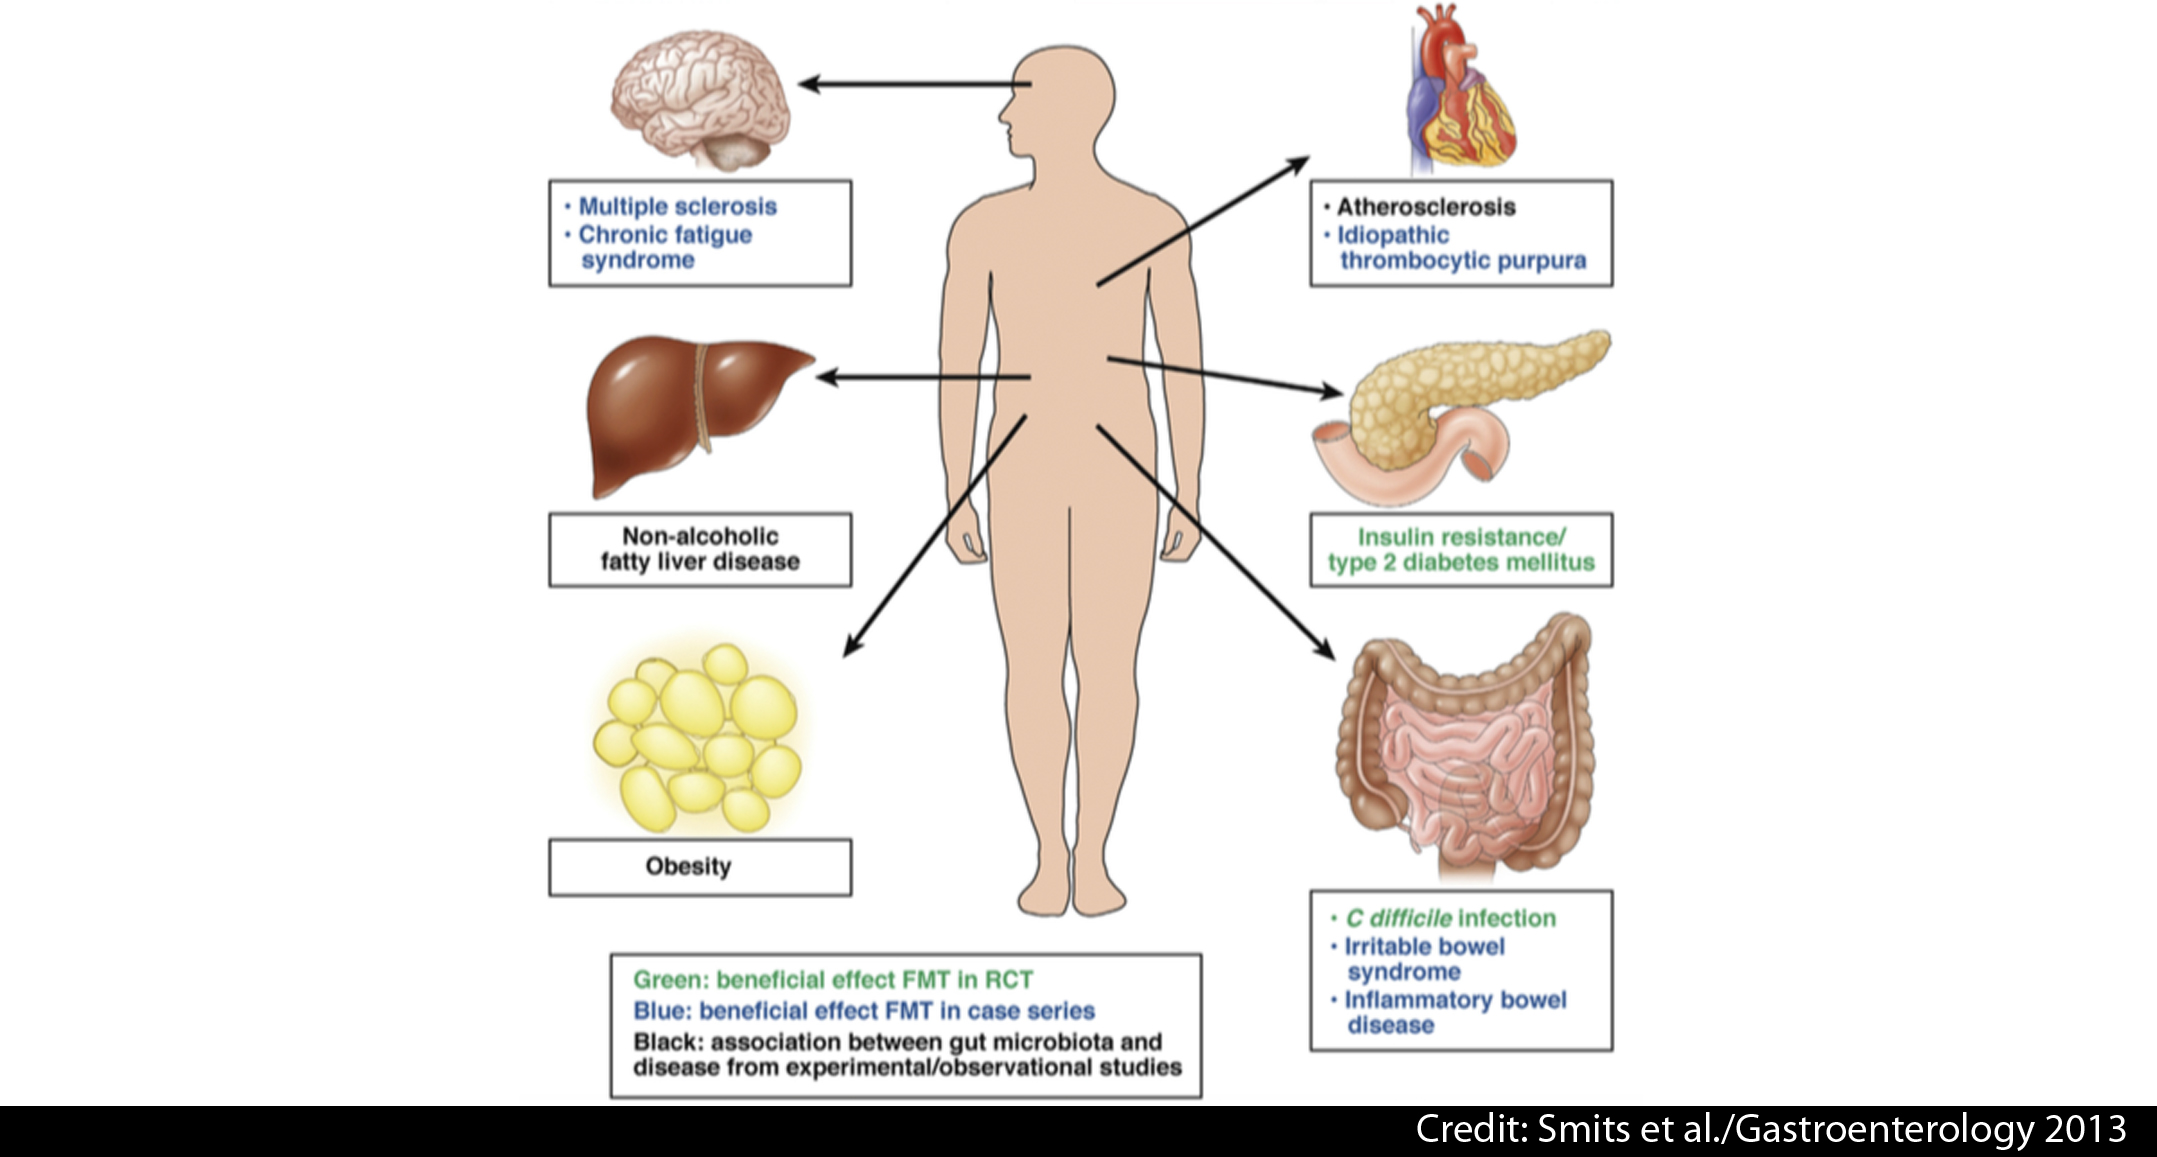 What is the current state-of-the-art of faecal microbiota